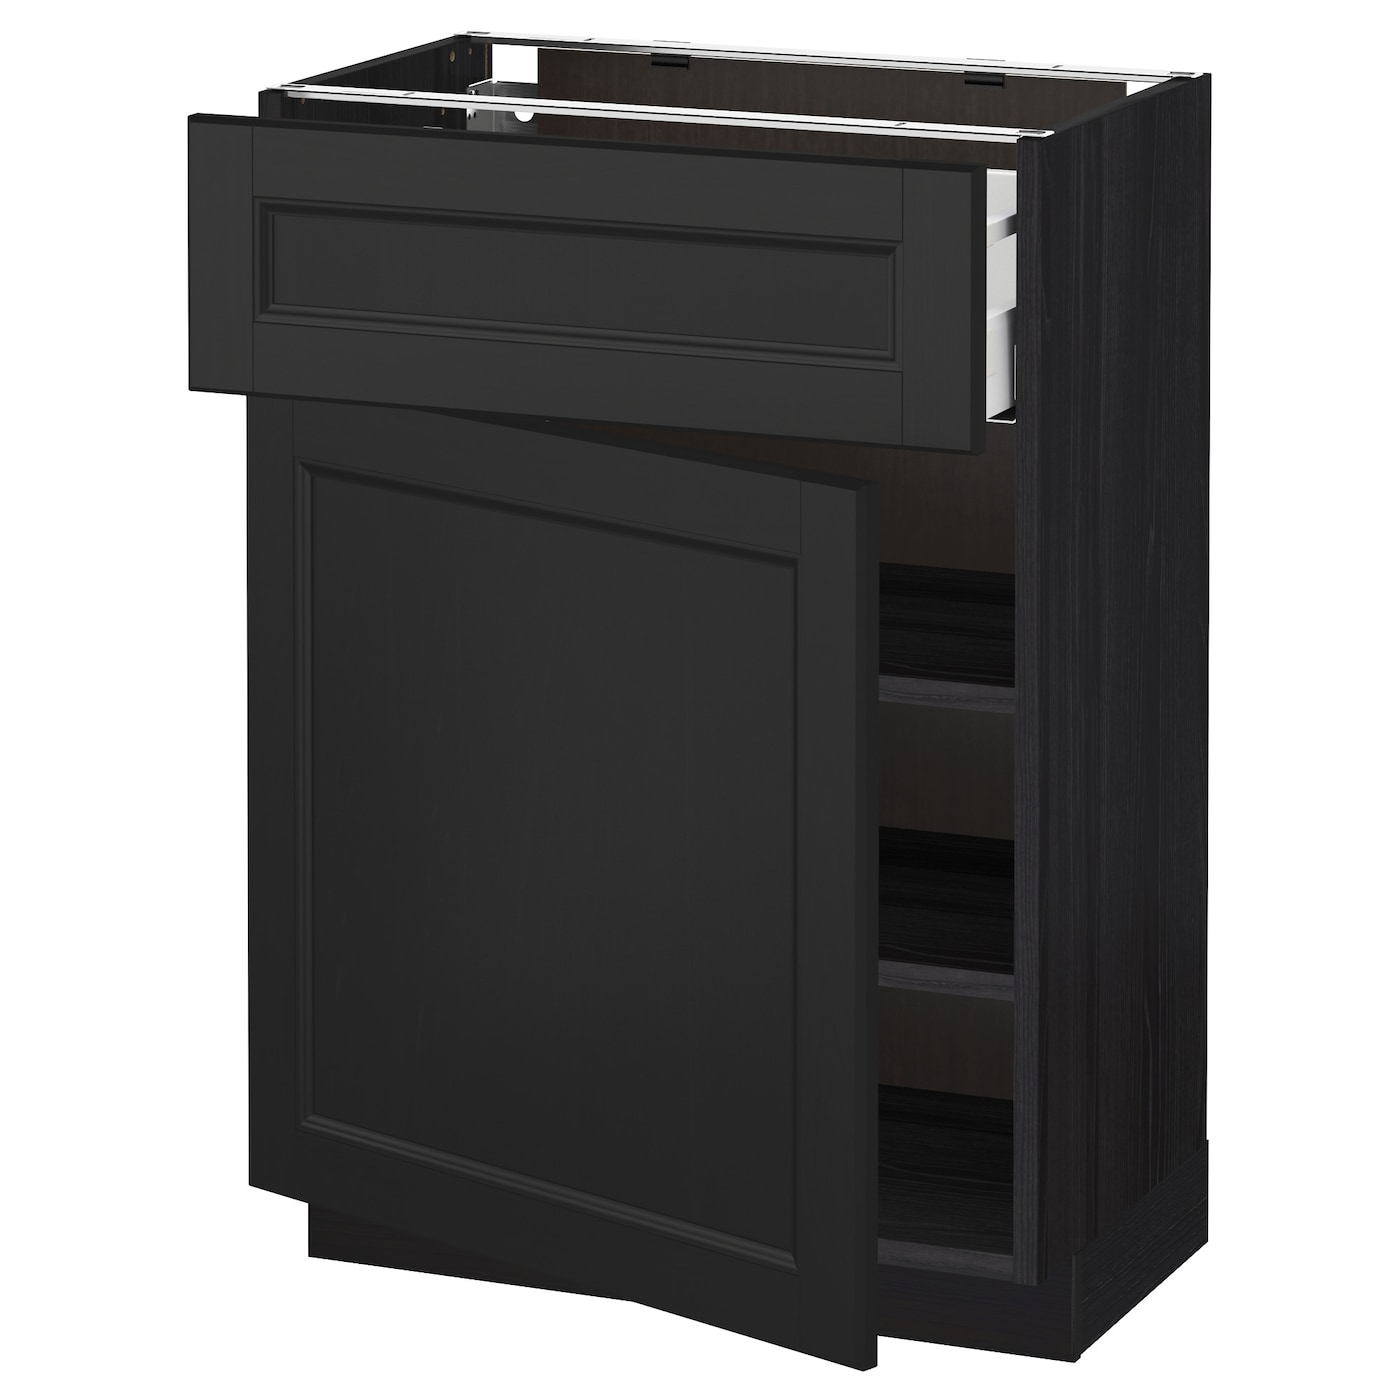 black kitchen base cabinets metod maximera base cabinet with drawer door black laxarby 12375